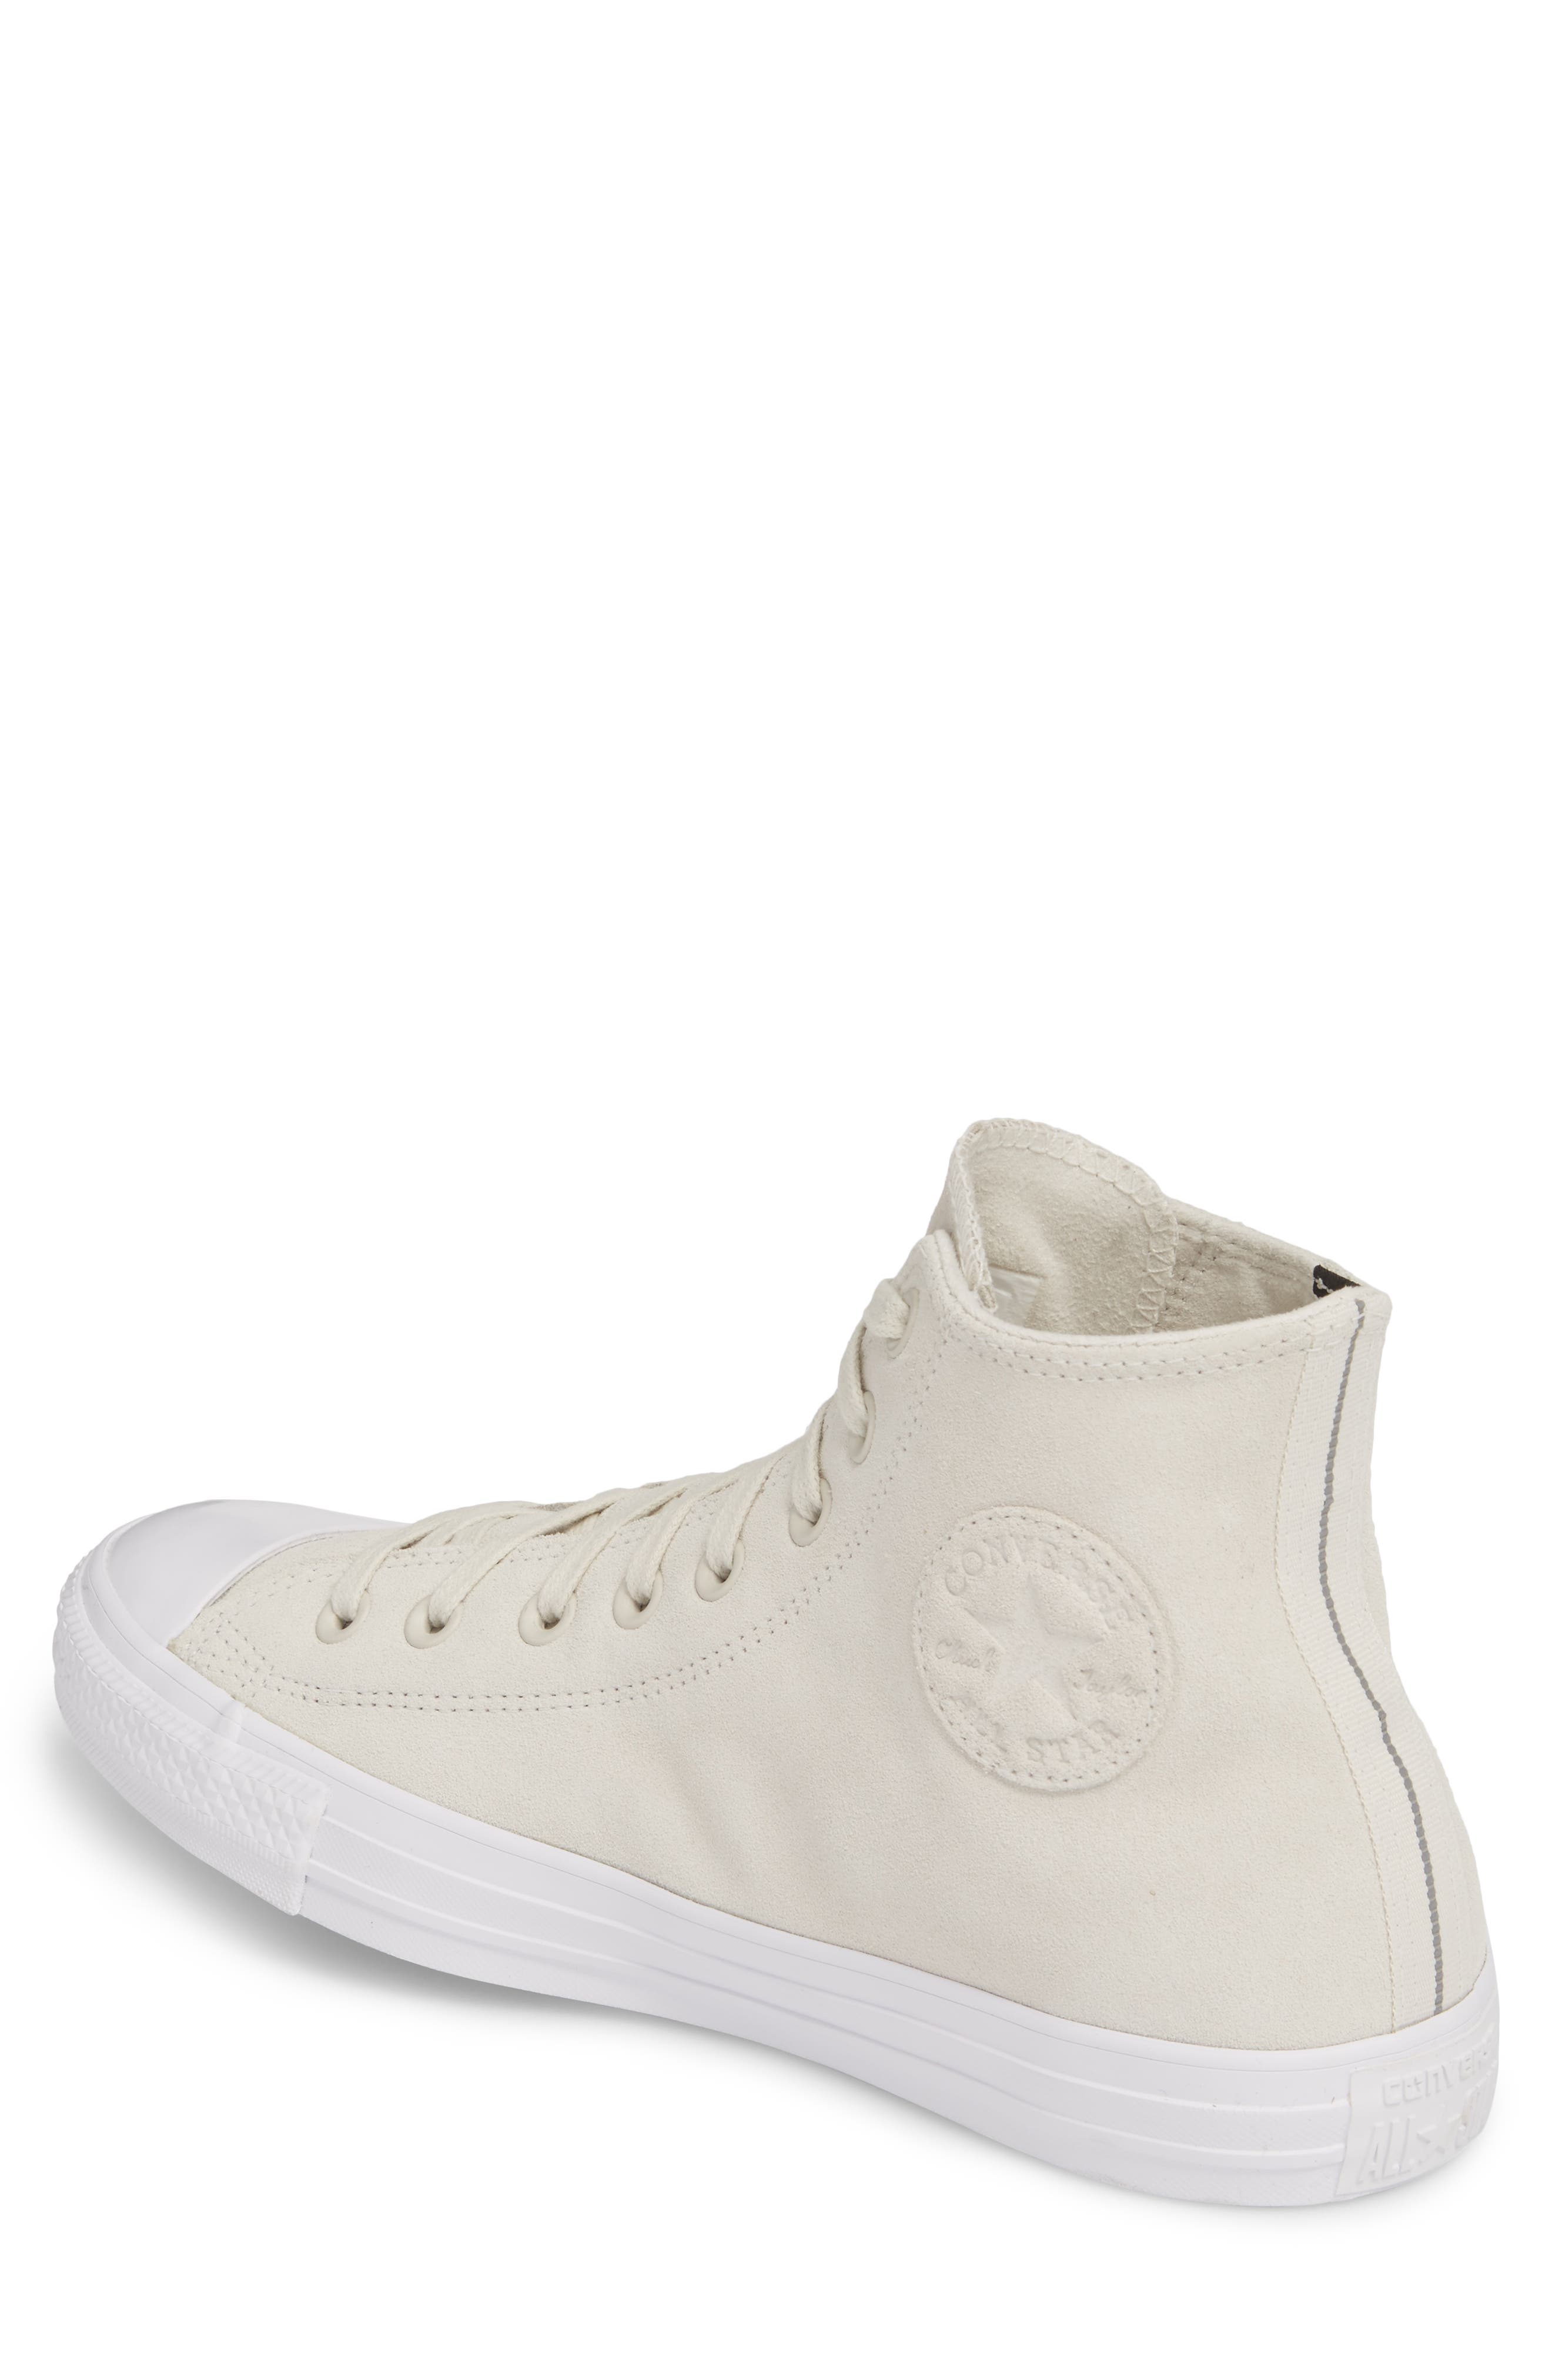 Chuck Taylor<sup>®</sup> All Star<sup>®</sup> Plush Hi Sneaker,                             Alternate thumbnail 2, color,                             250